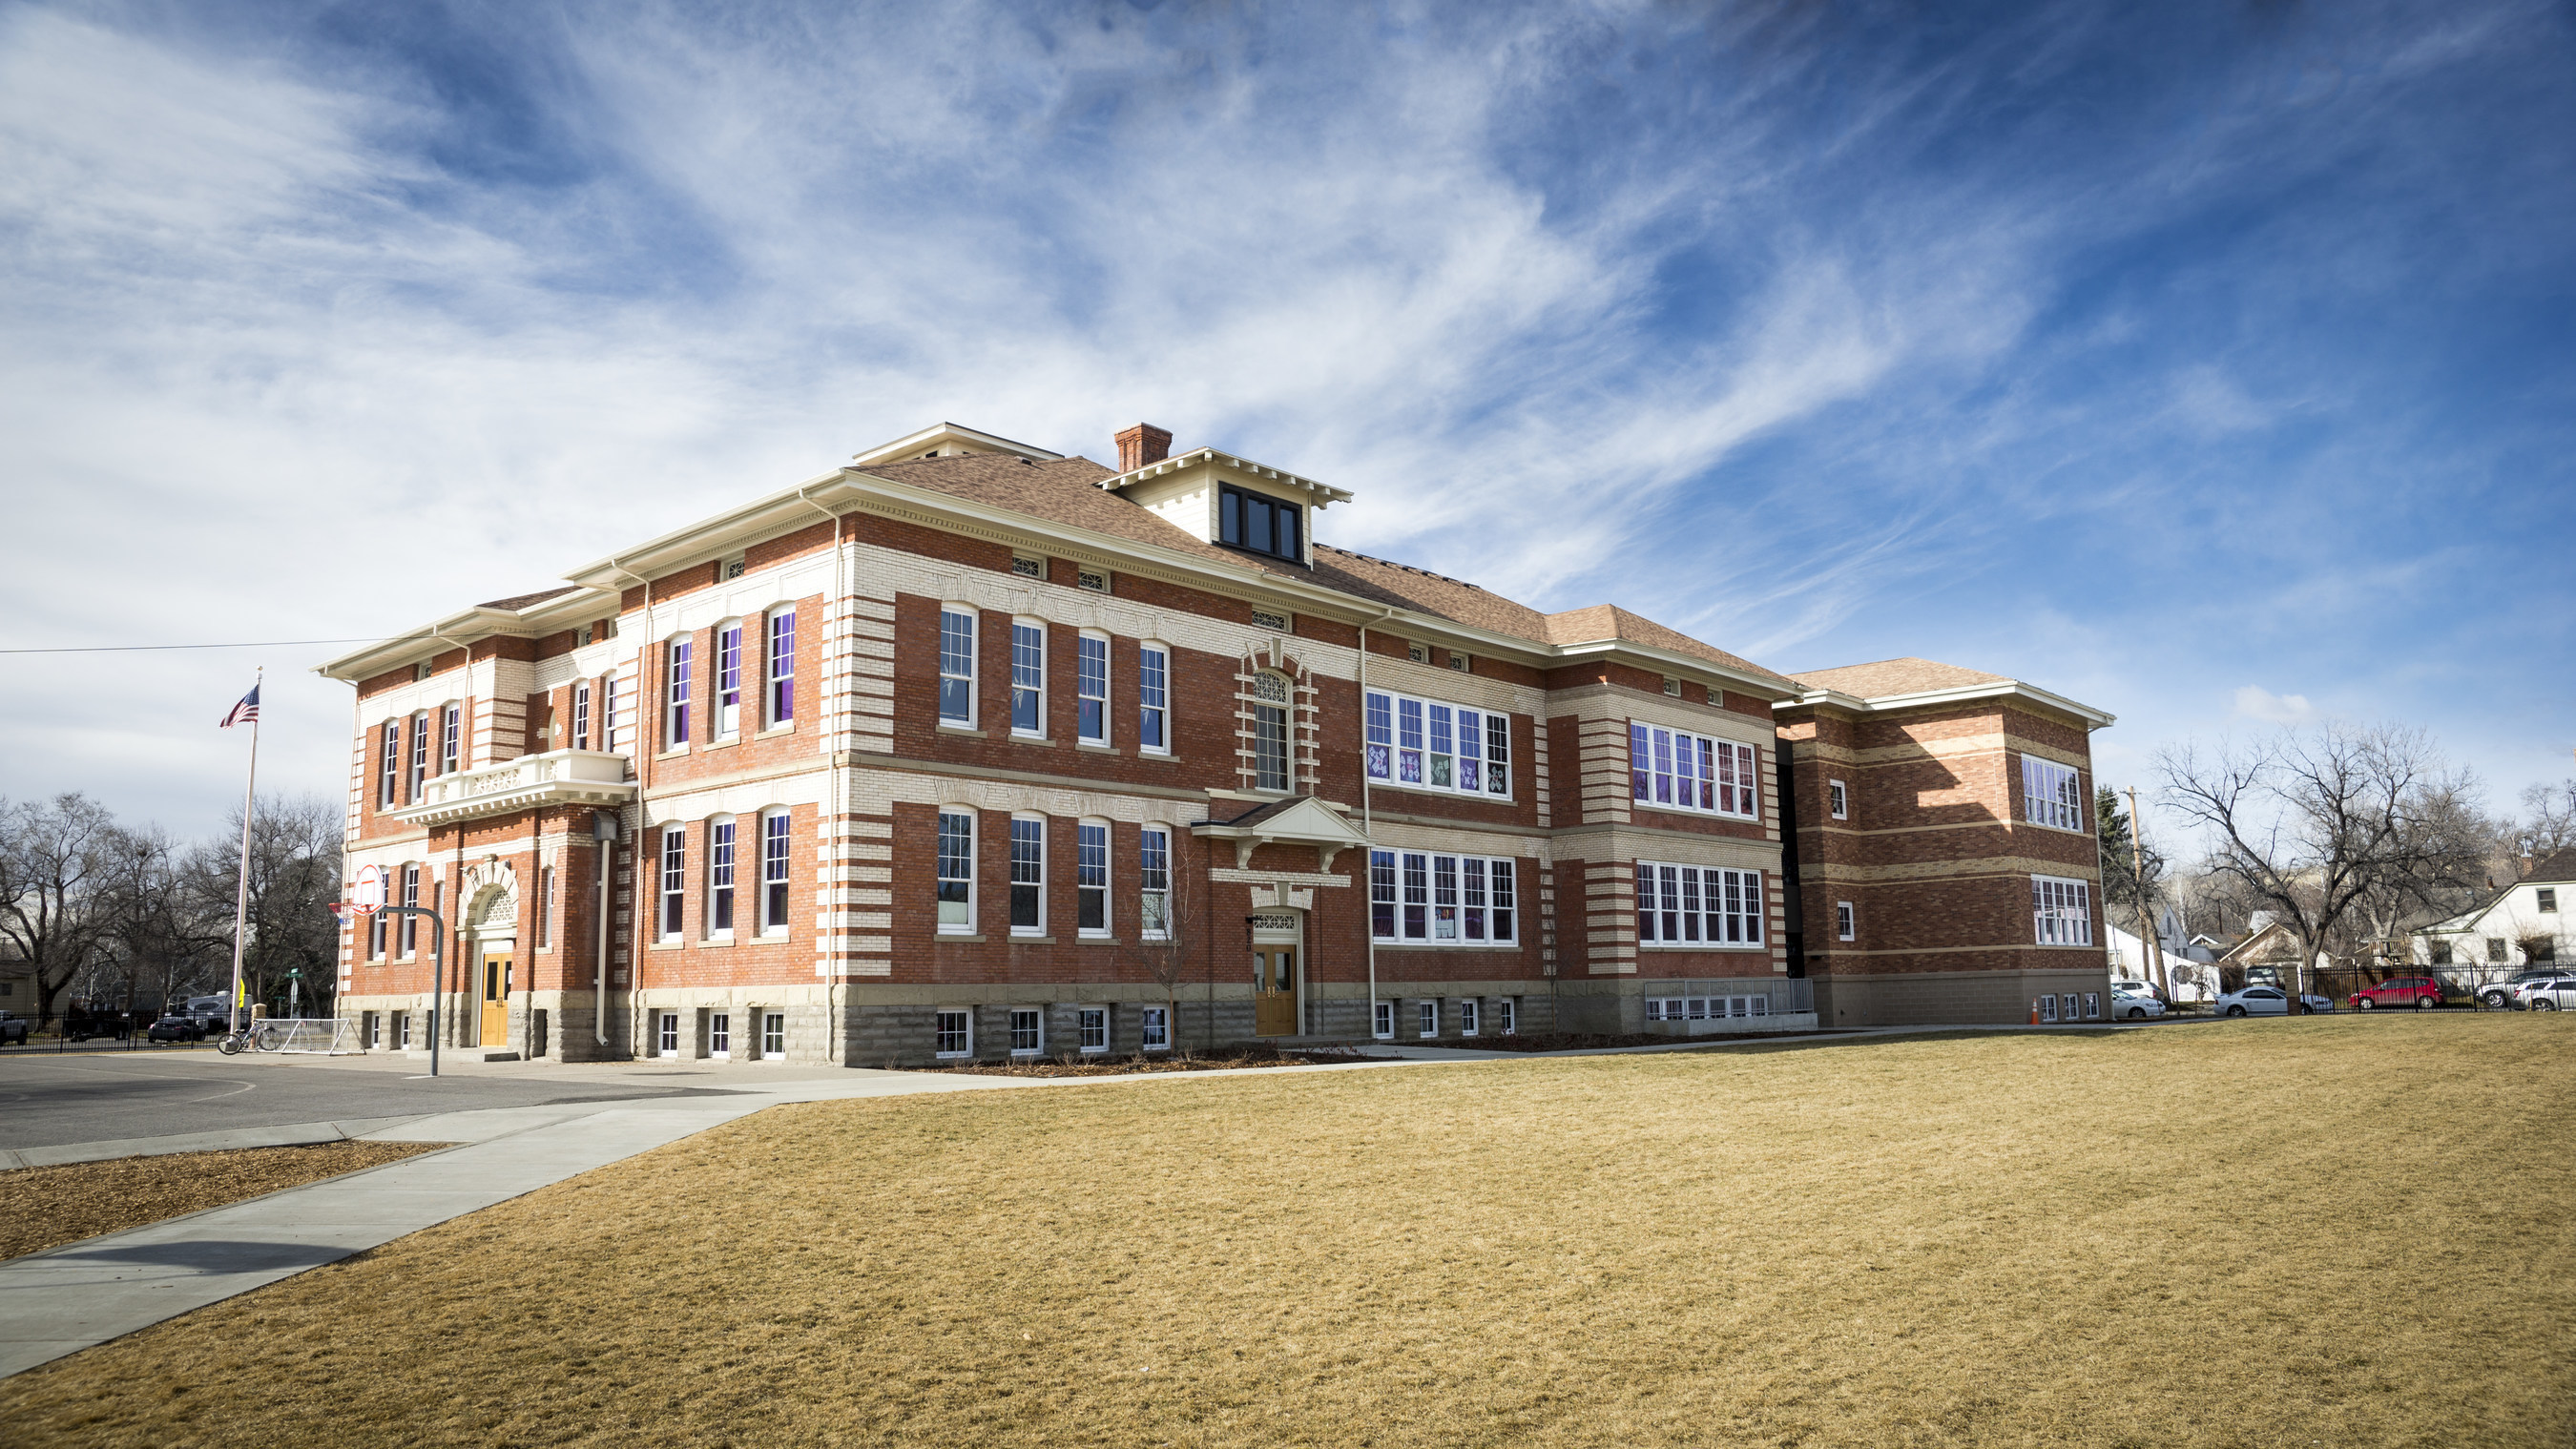 Billings Public Schools in Billings, Montana is upgrading its aging, copper-based technology platform throughout the district's 26 school sites with Zhone Technologies FiberLAN solution. In total, utilizing FiberLAN helped the school district save approximately $3 million on the update of its broadband network.